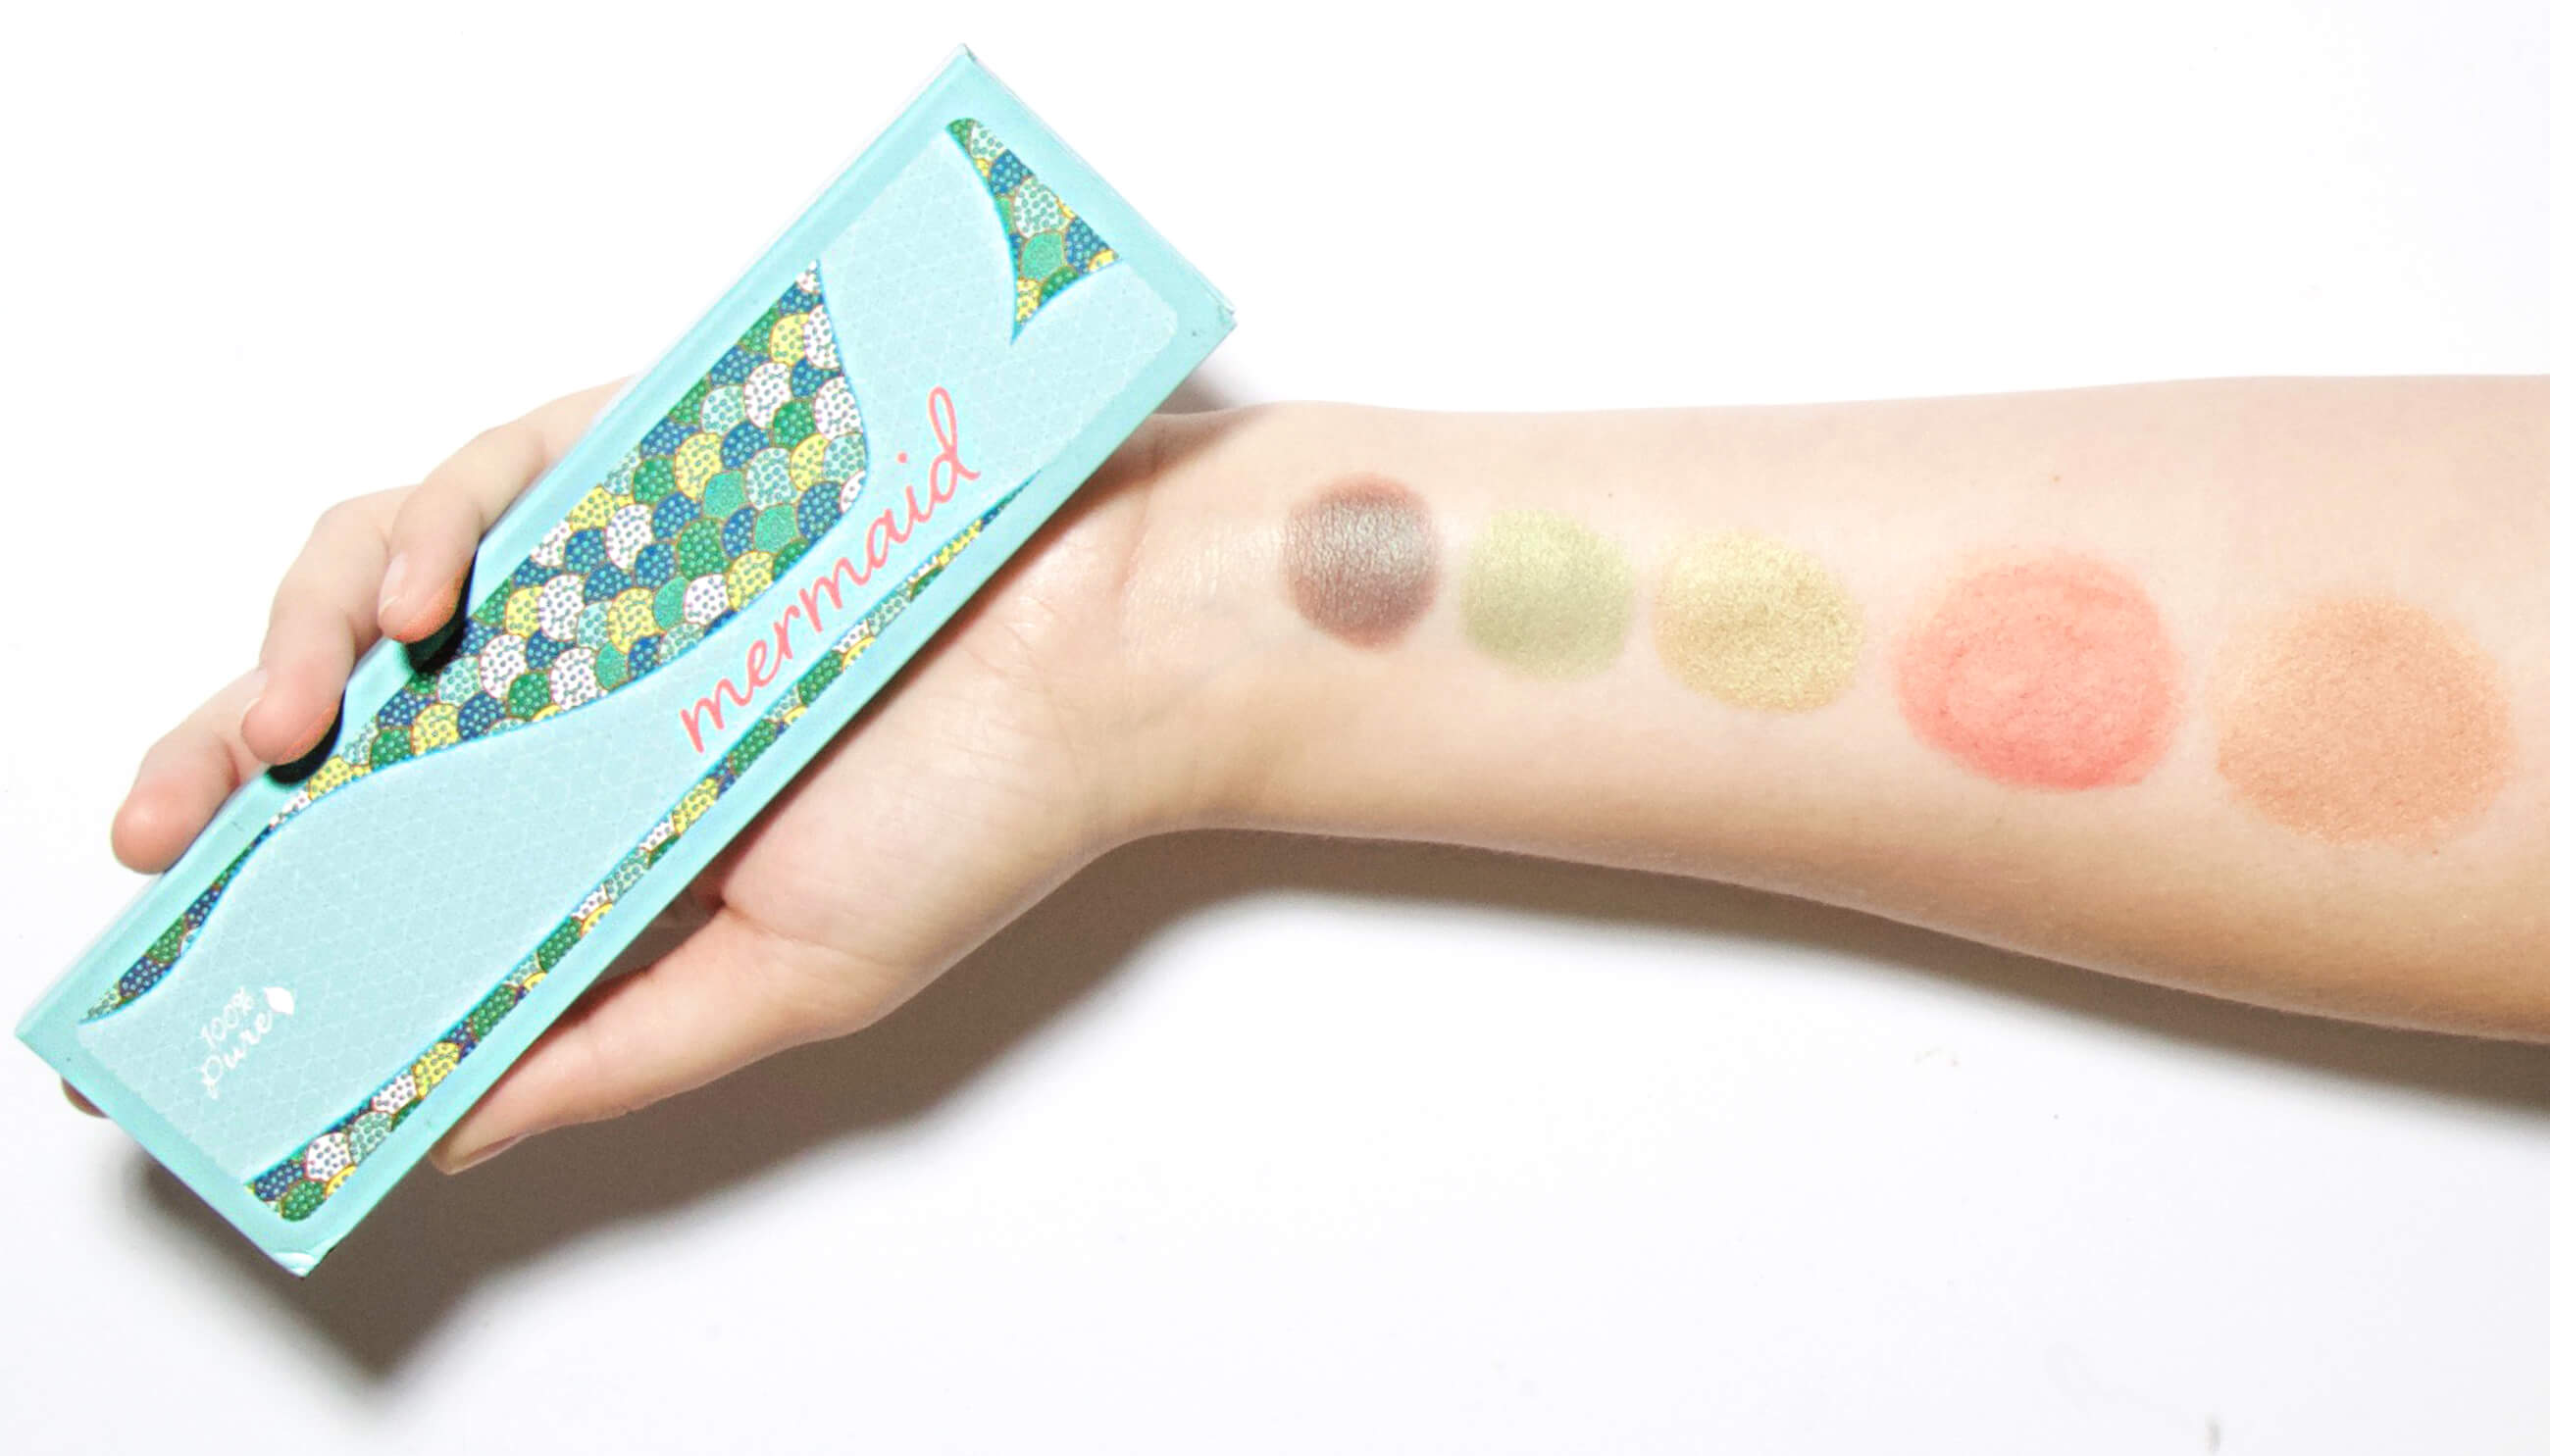 Mermaid Palette arm swatches